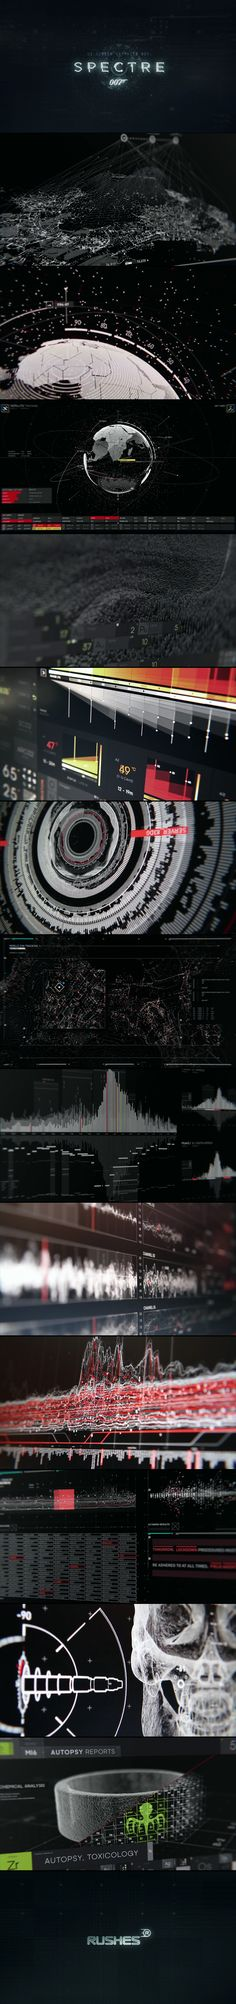 Some wow work from Soho, London based & award winning, international VFX Company Rushes who were tasked with designing and creating all on-set UI screen graphics for SPECTRE over a 13 month period ... UI Graphics Reel //...